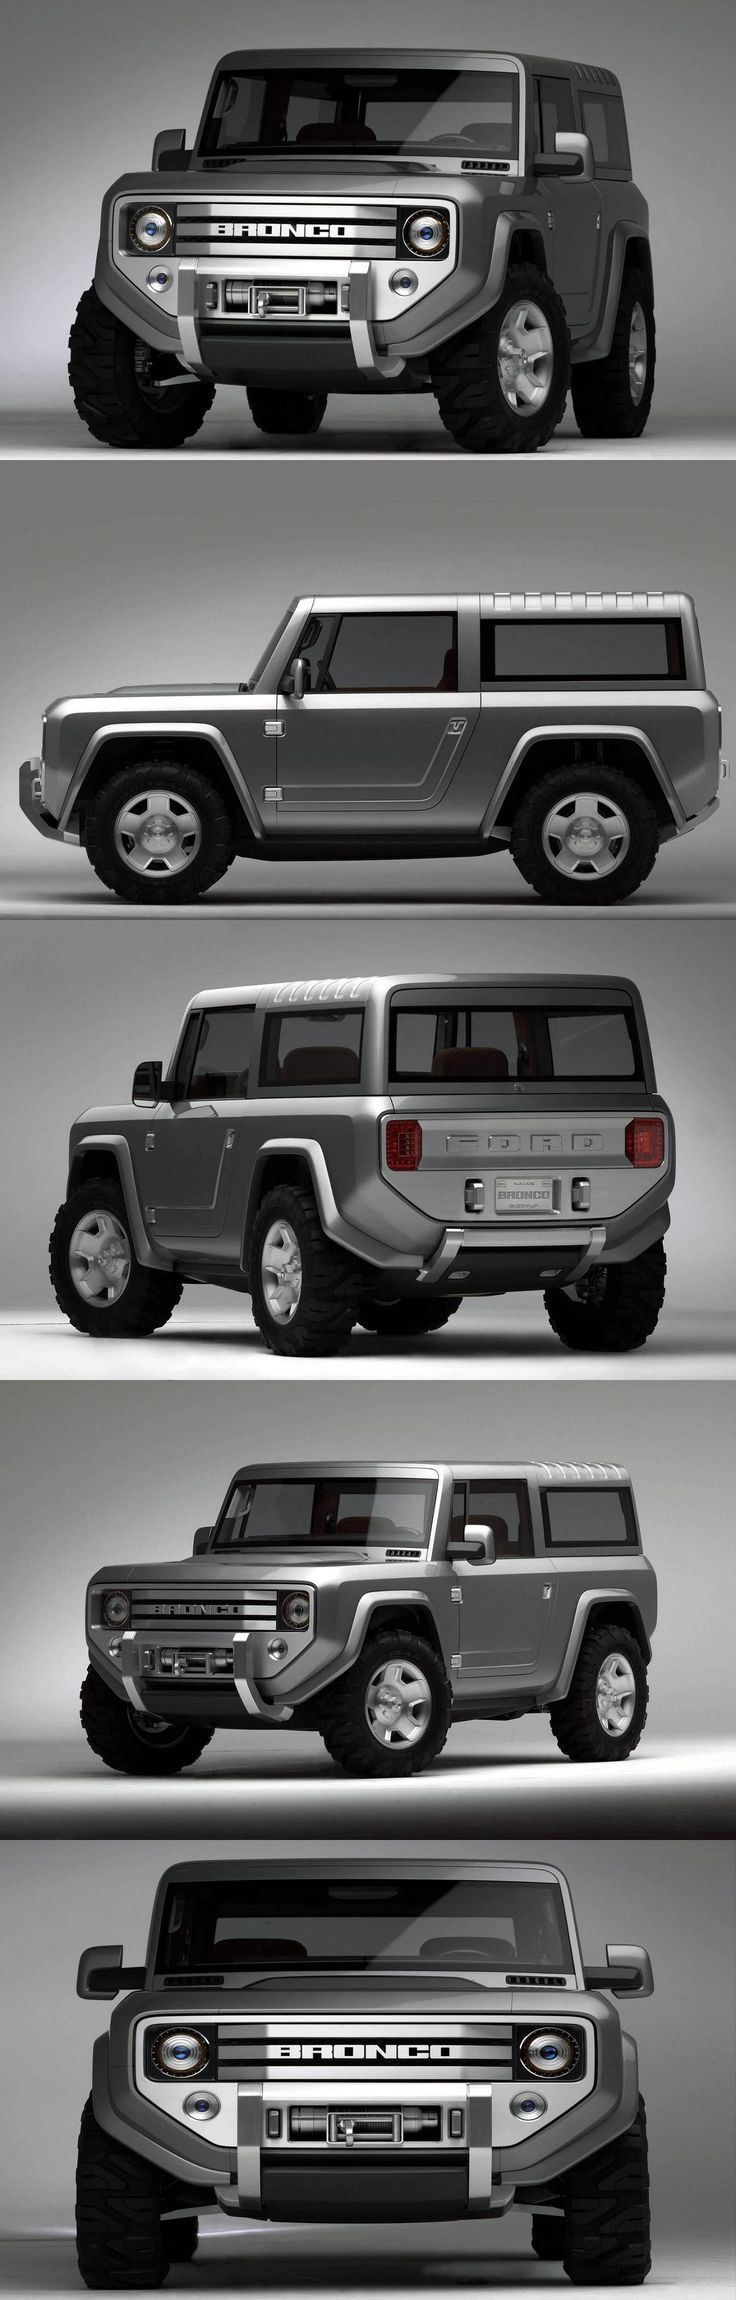 Ford Bronco Concept. If made i would totally get this